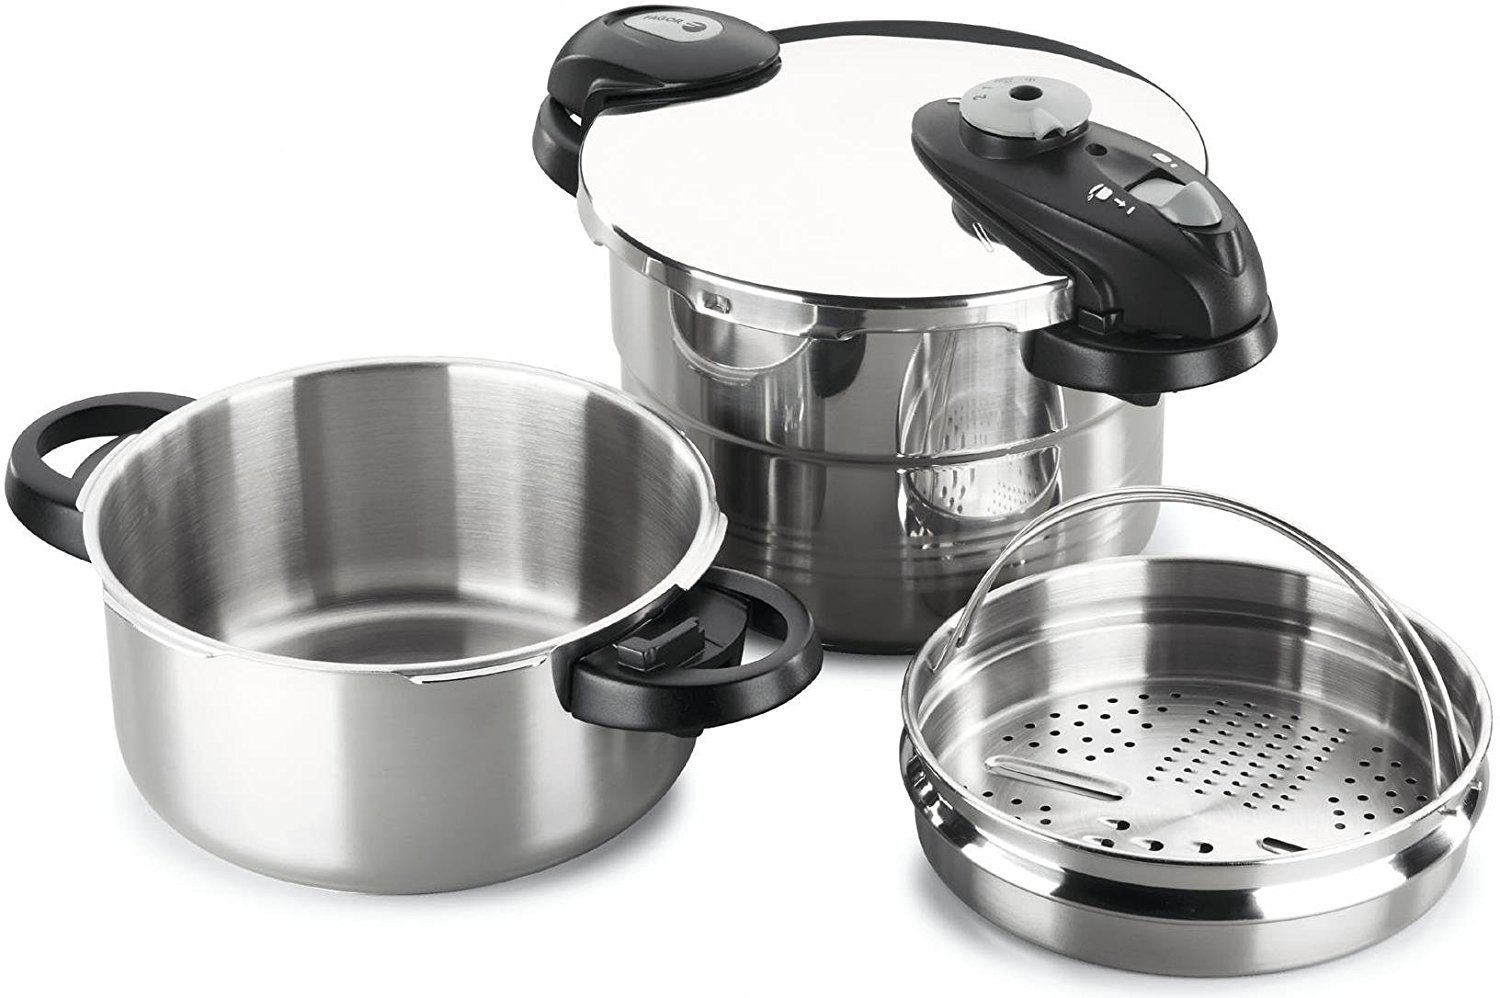 Fagor 918012991 Future IN 4 and 6 liters stainless steel Induction pressure cooker (3in1 sieve insert for steam cooking, as a drainer and a multi-grater, inductive, 22cm) silver